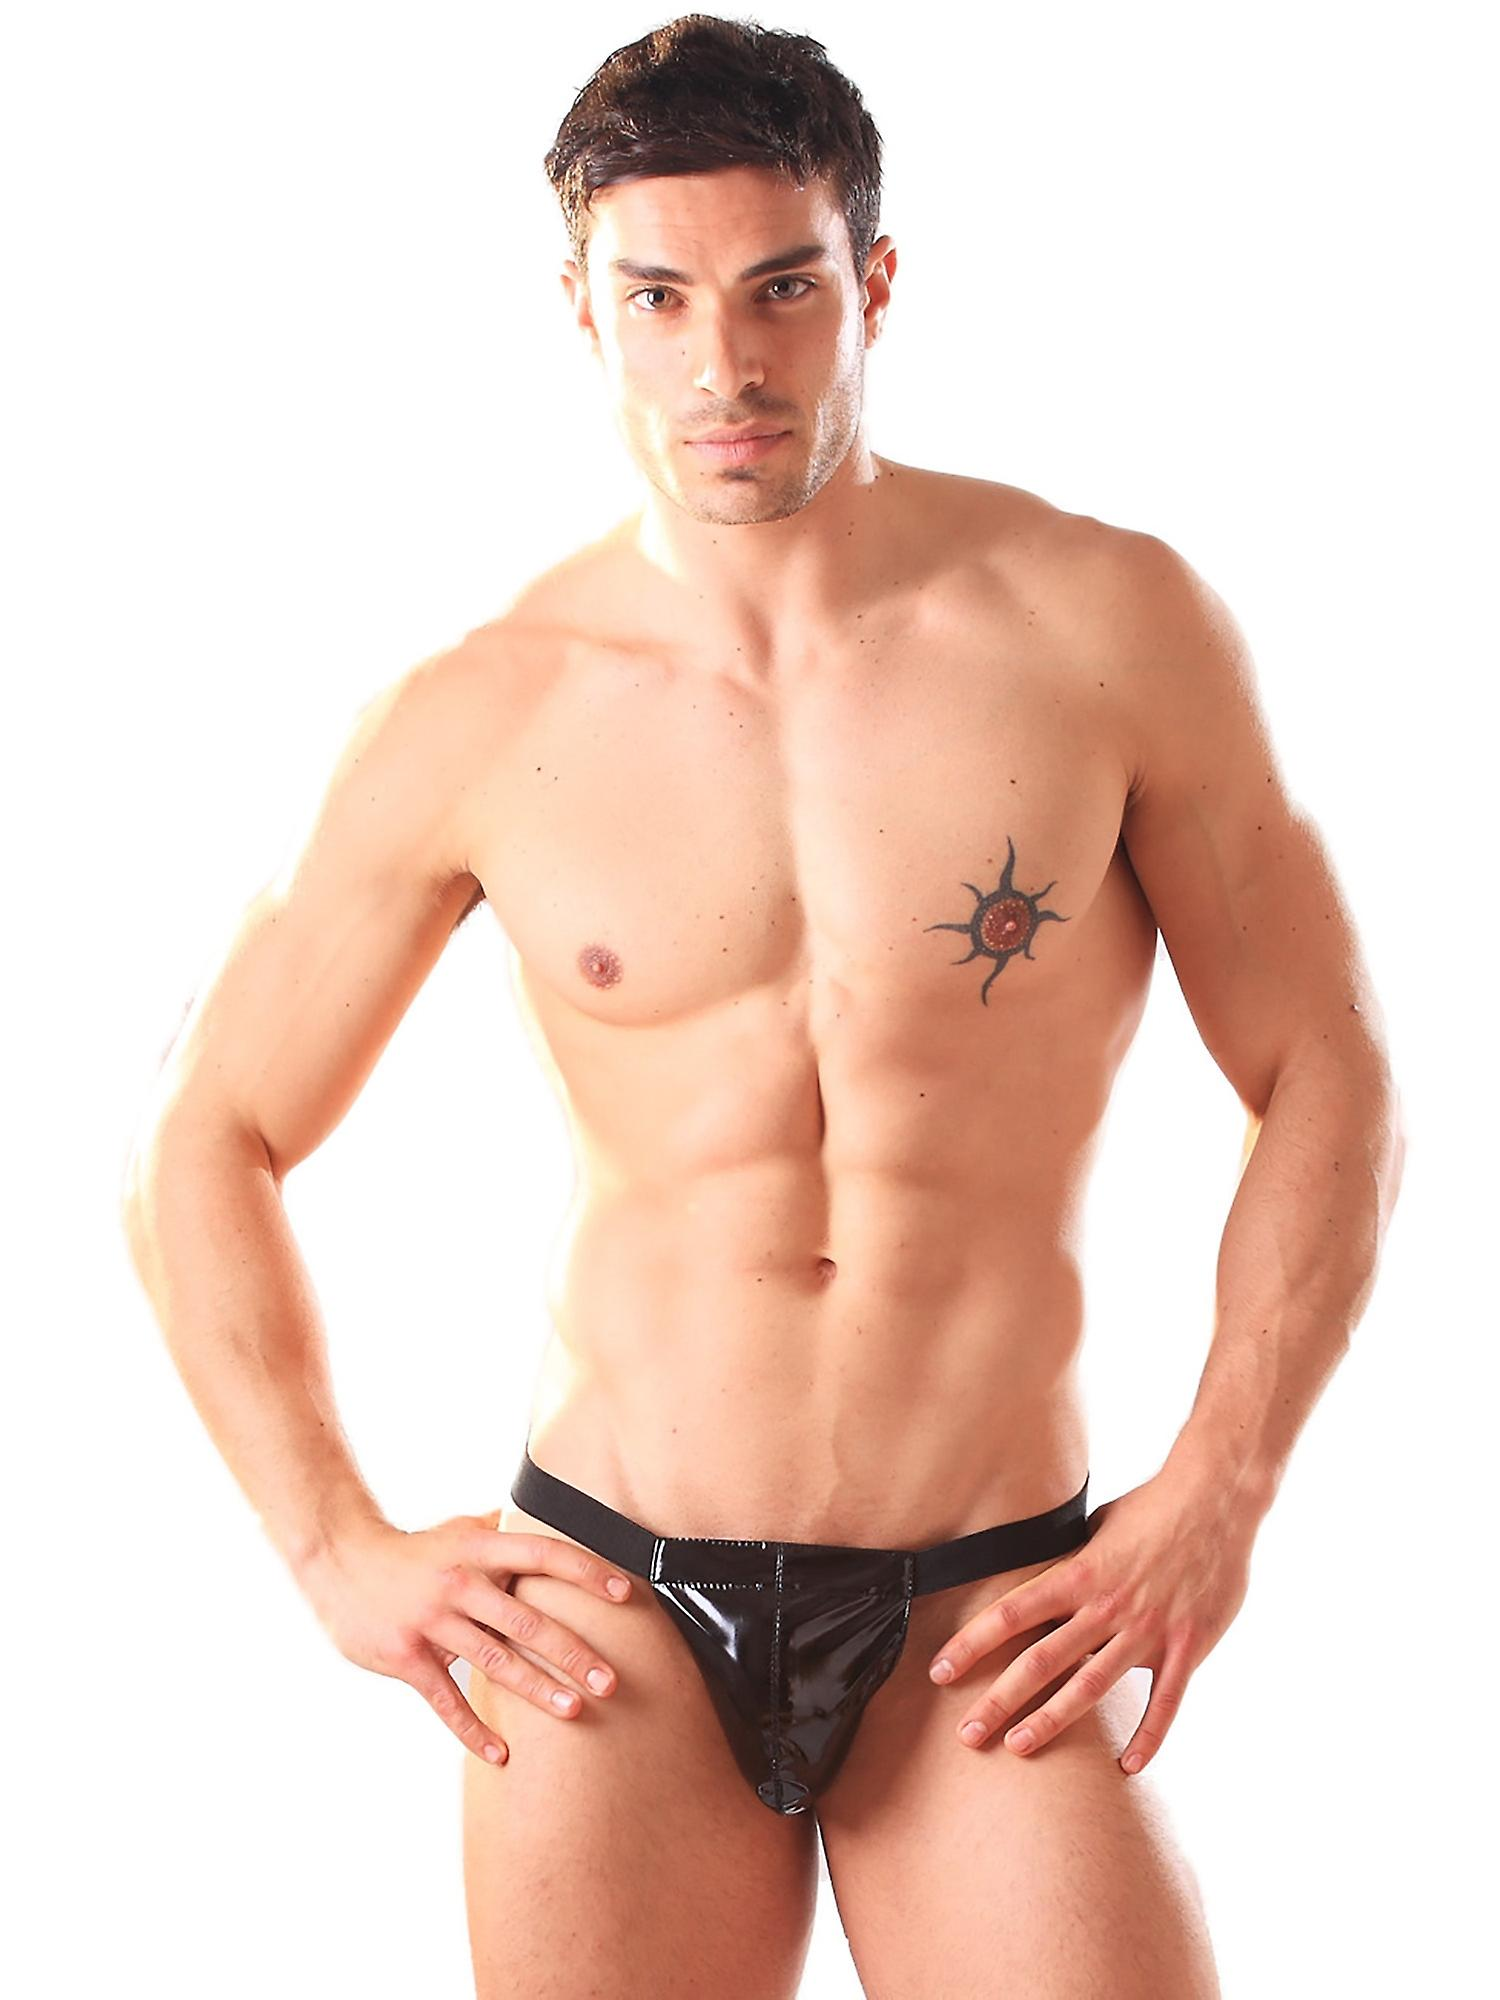 Honour Men's Thong in PVC Sexy G String Bedroom Wear Elasticated Waistband